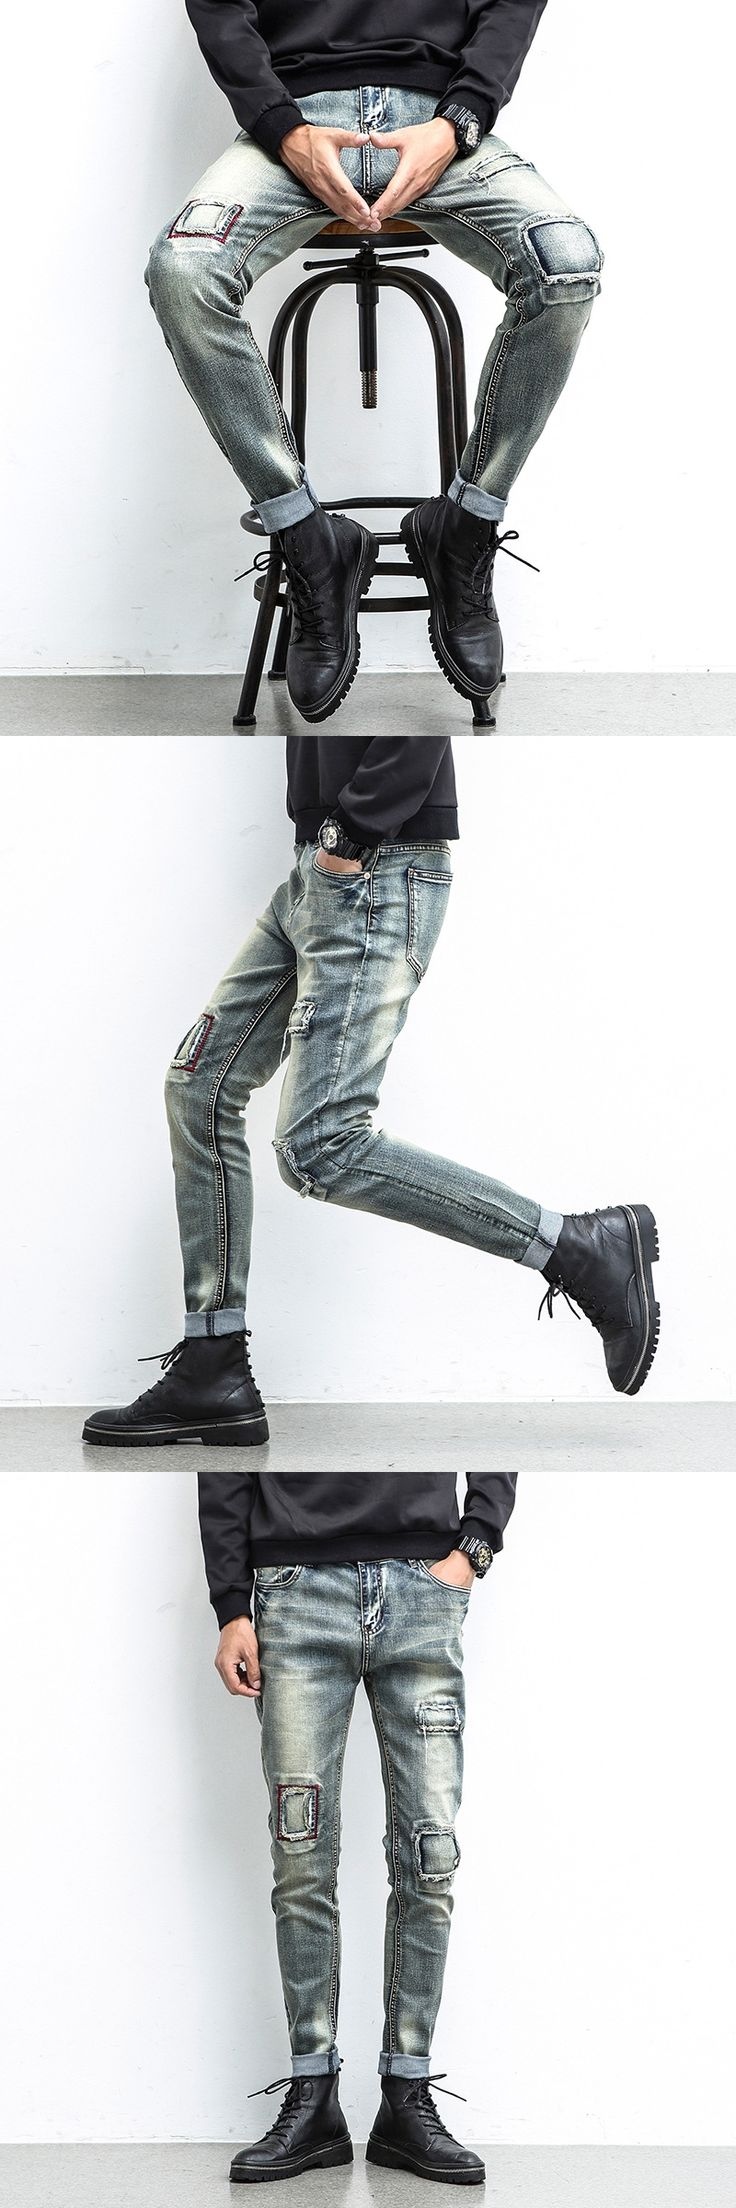 NEW Patch Jeans Men Skinny Casual Cotton Classic Ripped Denim For Men Straight Slim Fit Plus Size Blue Rap Harajuku Biker Jeans